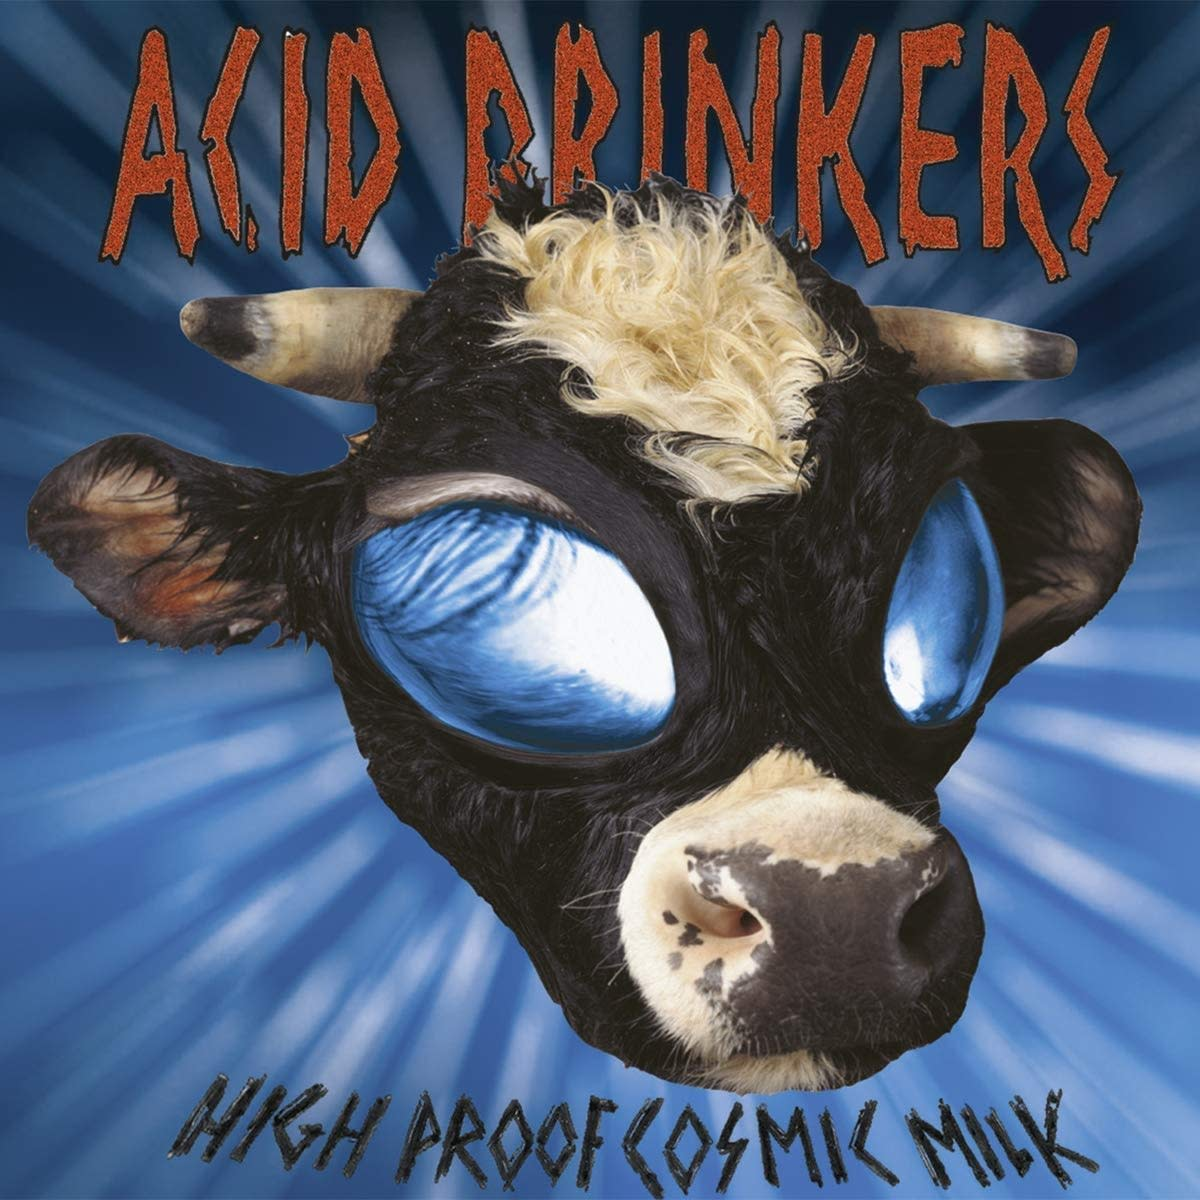 review-of-the-album-high-proof-cosmic-milk-by-acid-drinkers